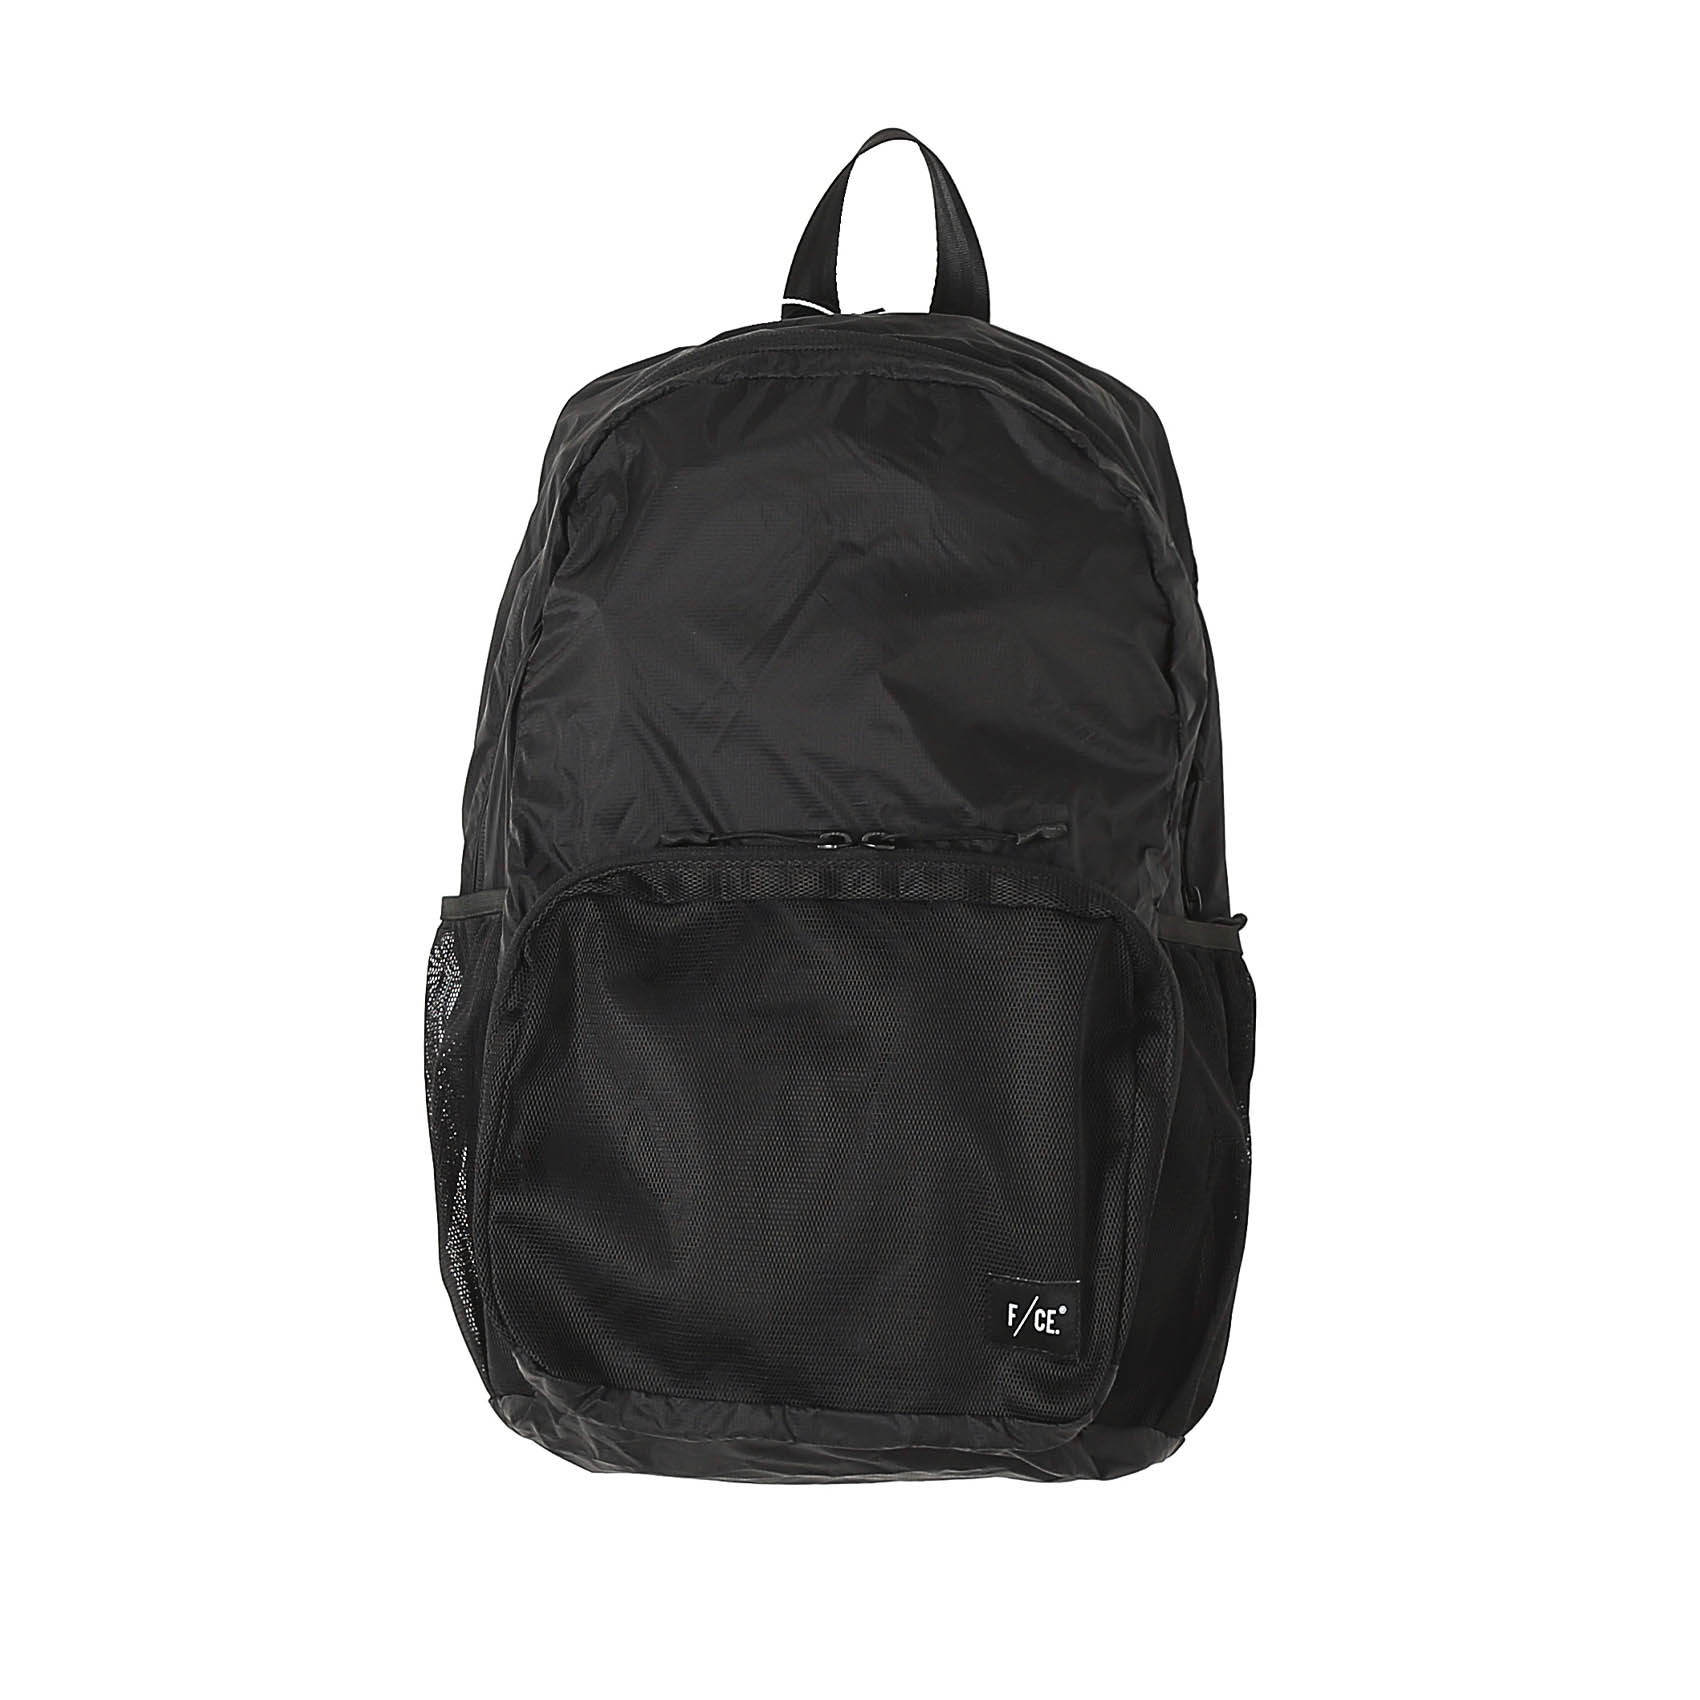 RECYCLED PACKABLE DAYPACK - BLACK